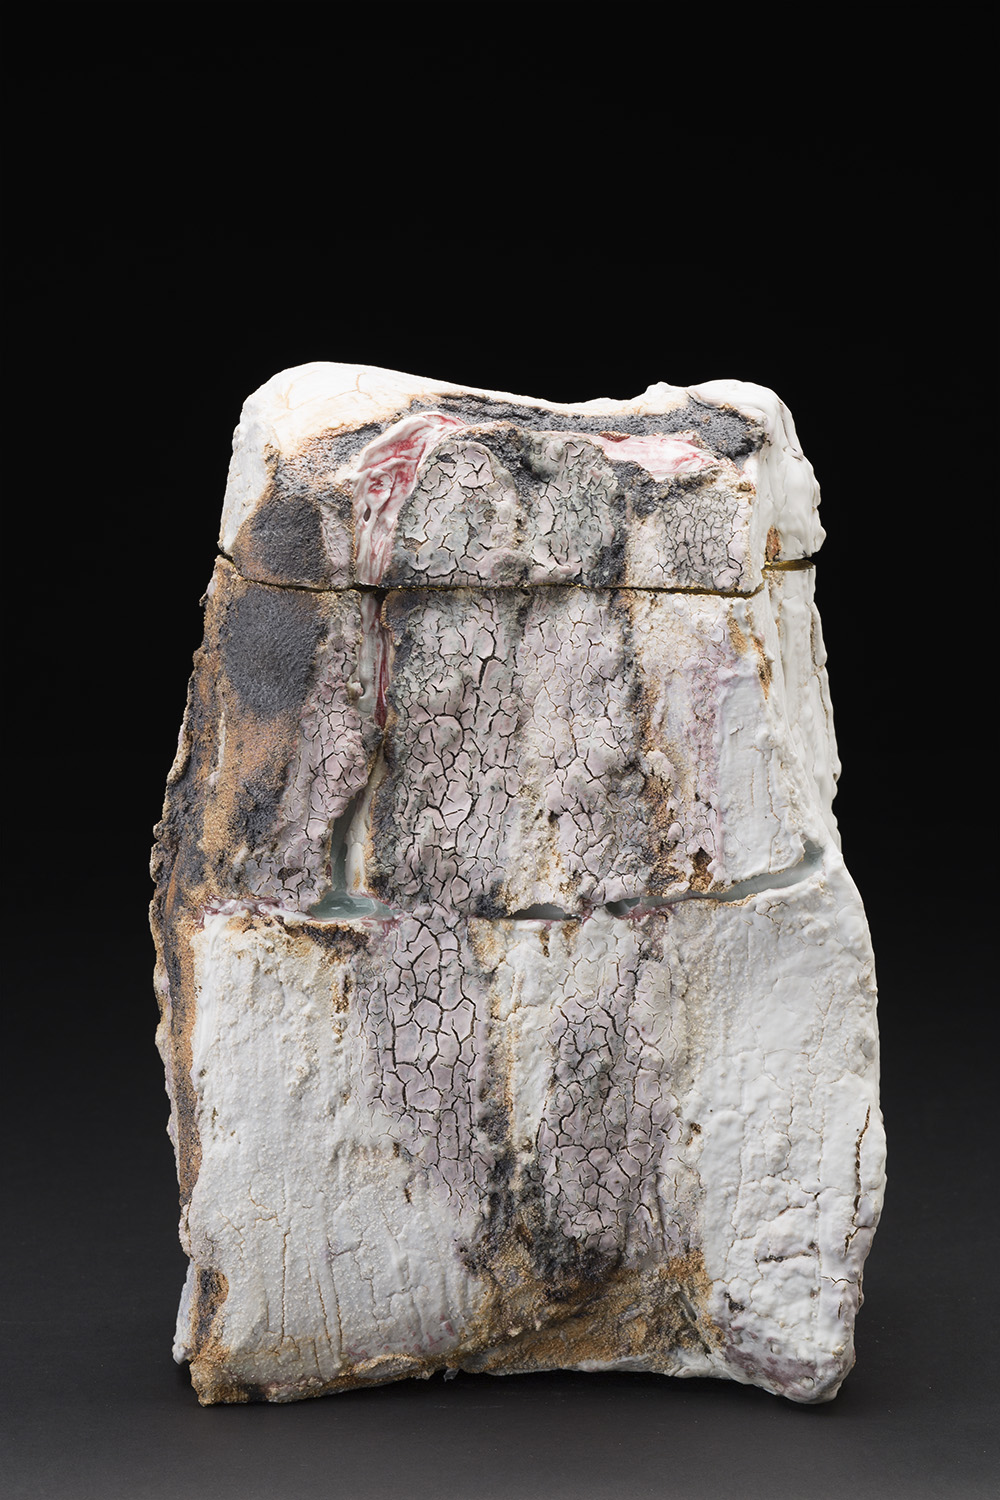 Eddie Curtis    Rock  , 2012 Modified porcelain, applied texture and oxides on outer surface, celadon glaze on inner surface, 22ct gold leaf detailing 11.5 x 8.5 x 5 inches 29.2 x 21.6 x 12.7 cm ECu 8